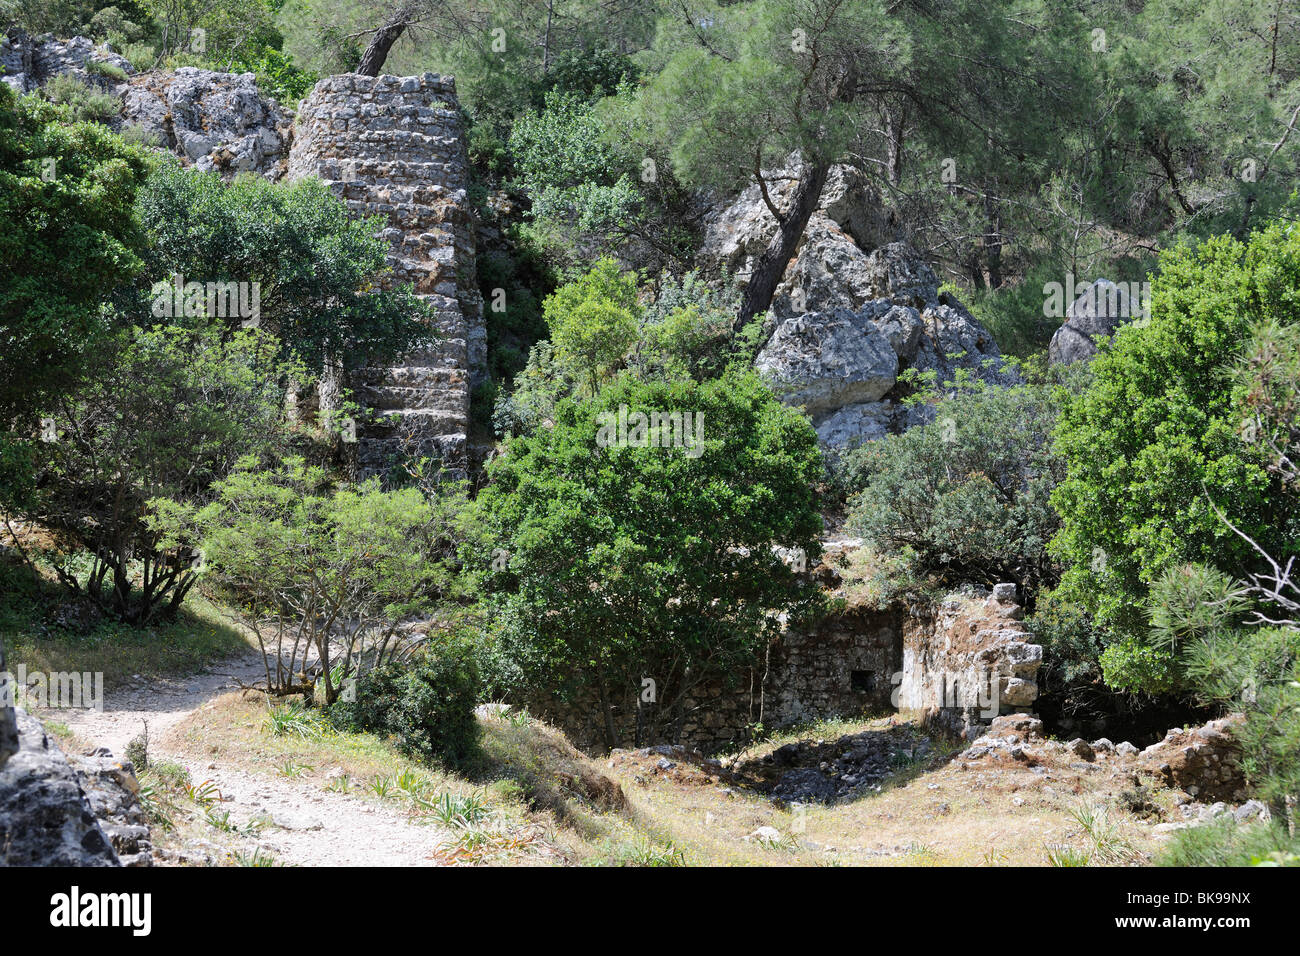 Remains of an old mill in Epta Piges, Valley of the Seven Sources, Rhodes, Greece, Europe - Stock Image